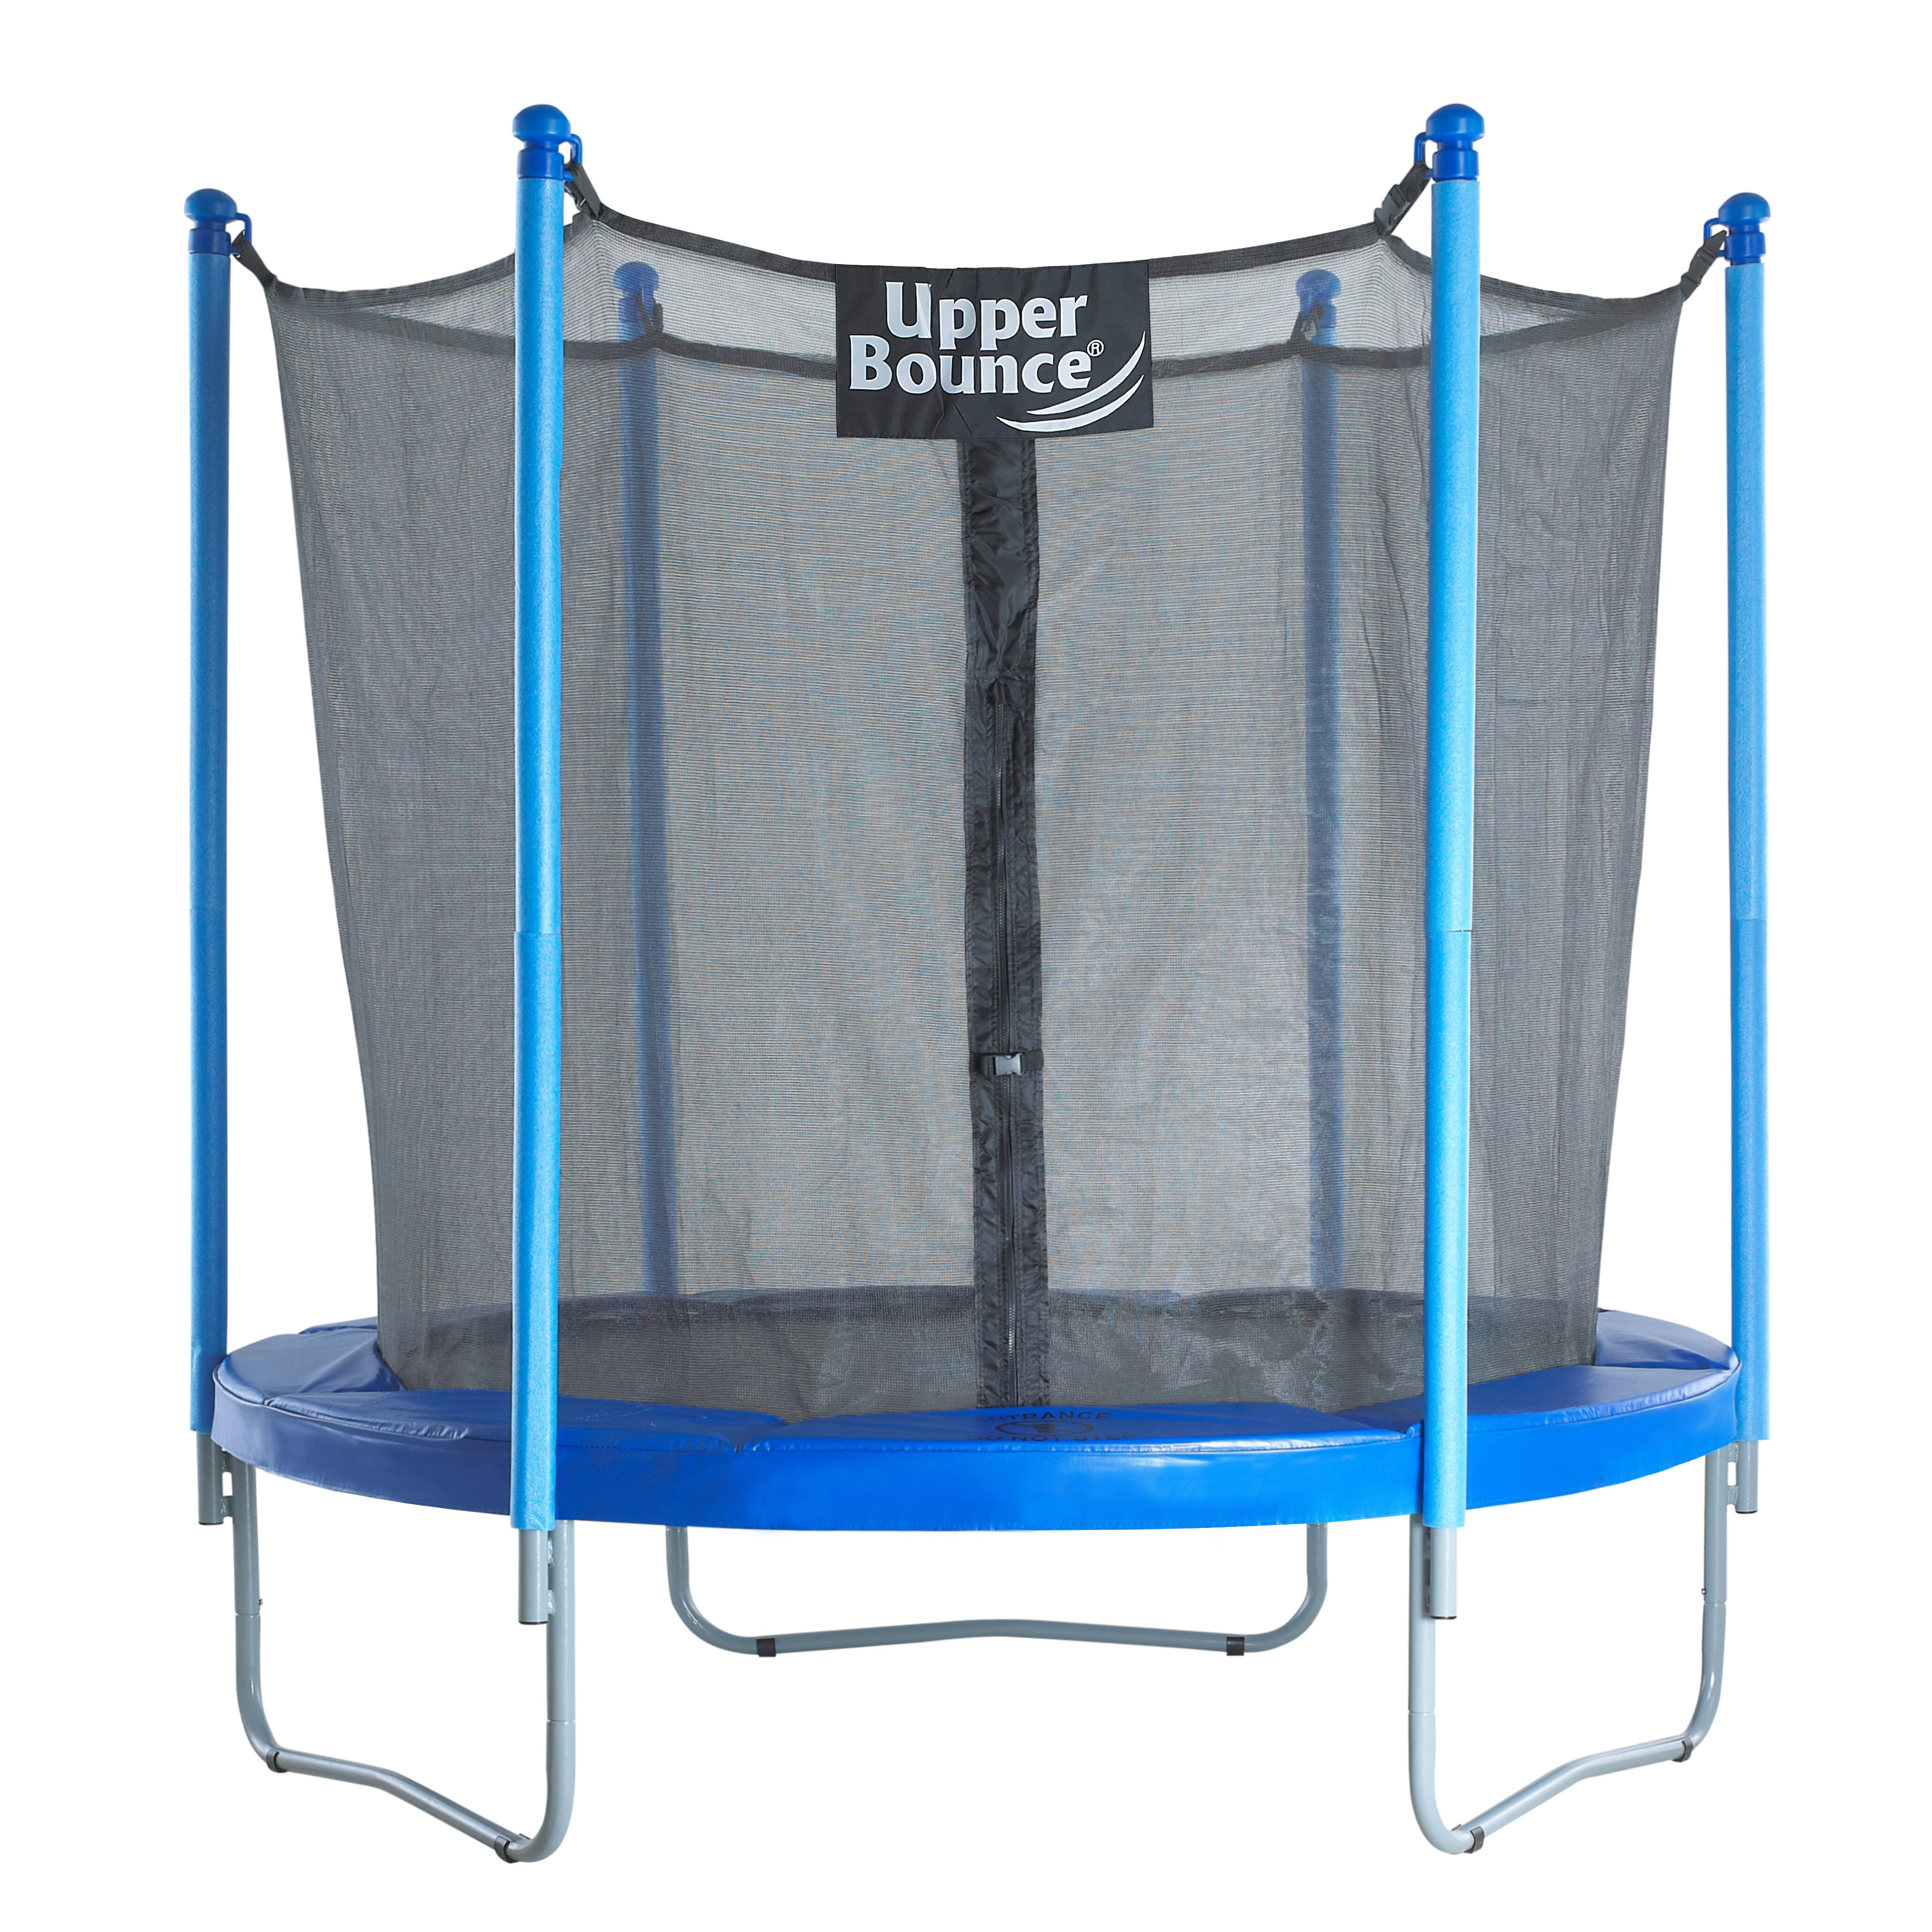 Trampoline Parts Walmart: Upper Bounce 7.5' Trampoline With Enclosure & Reviews